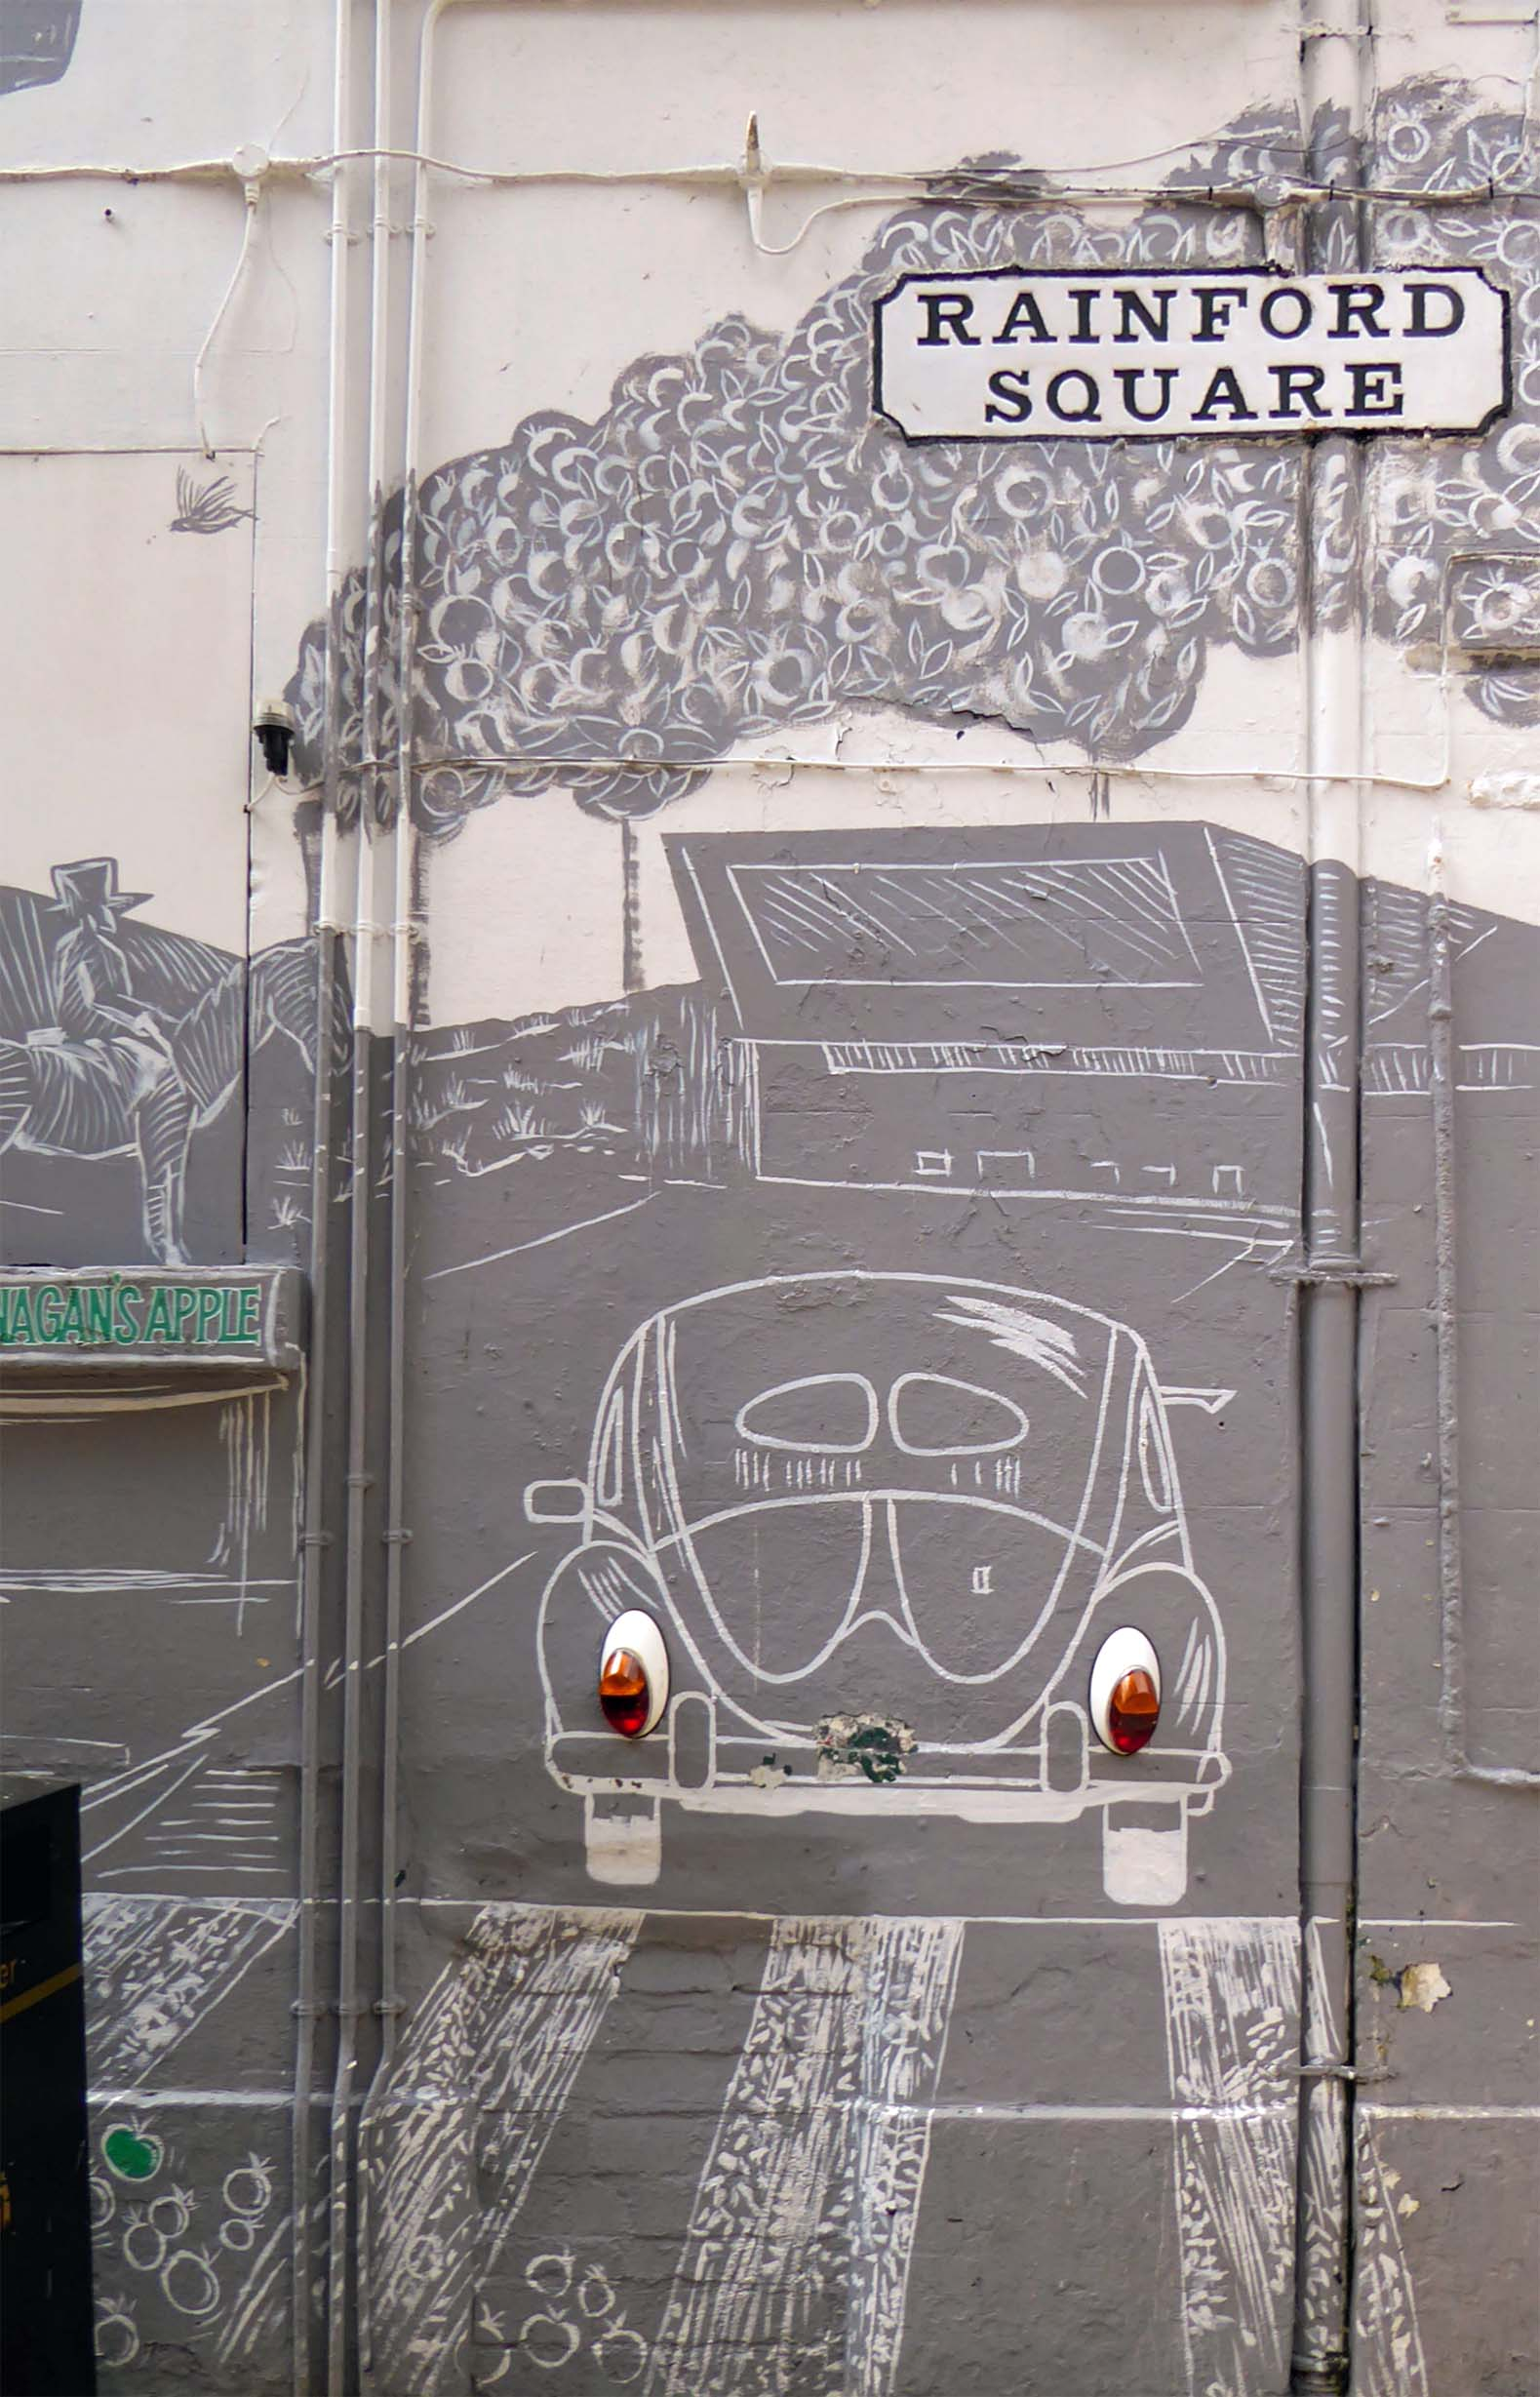 Grey wall painting of a car